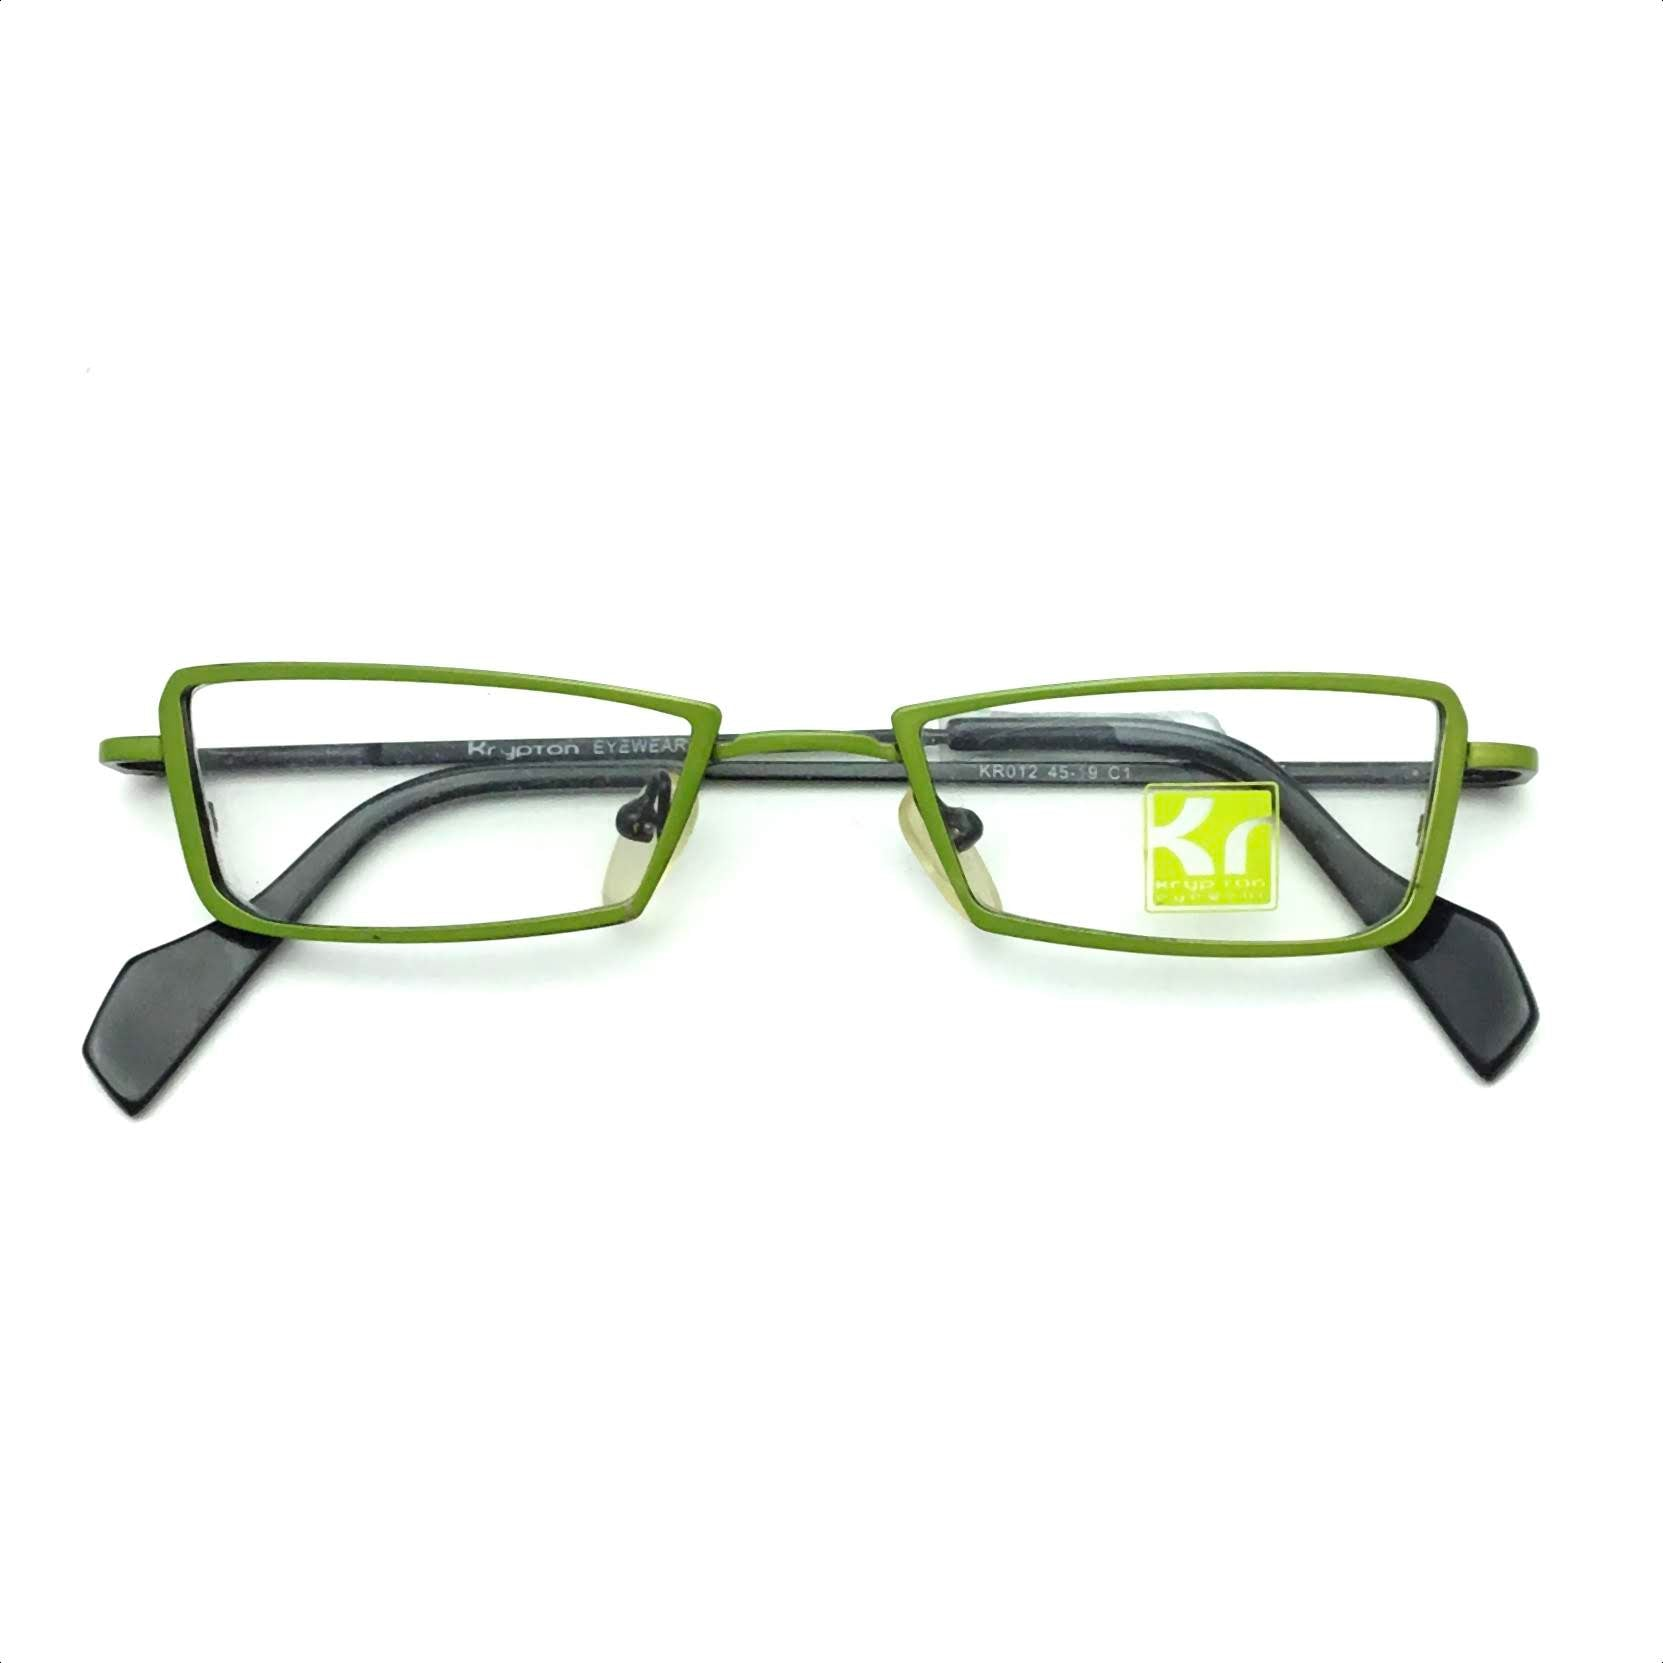 Krypton Glasses $39 Unique B6